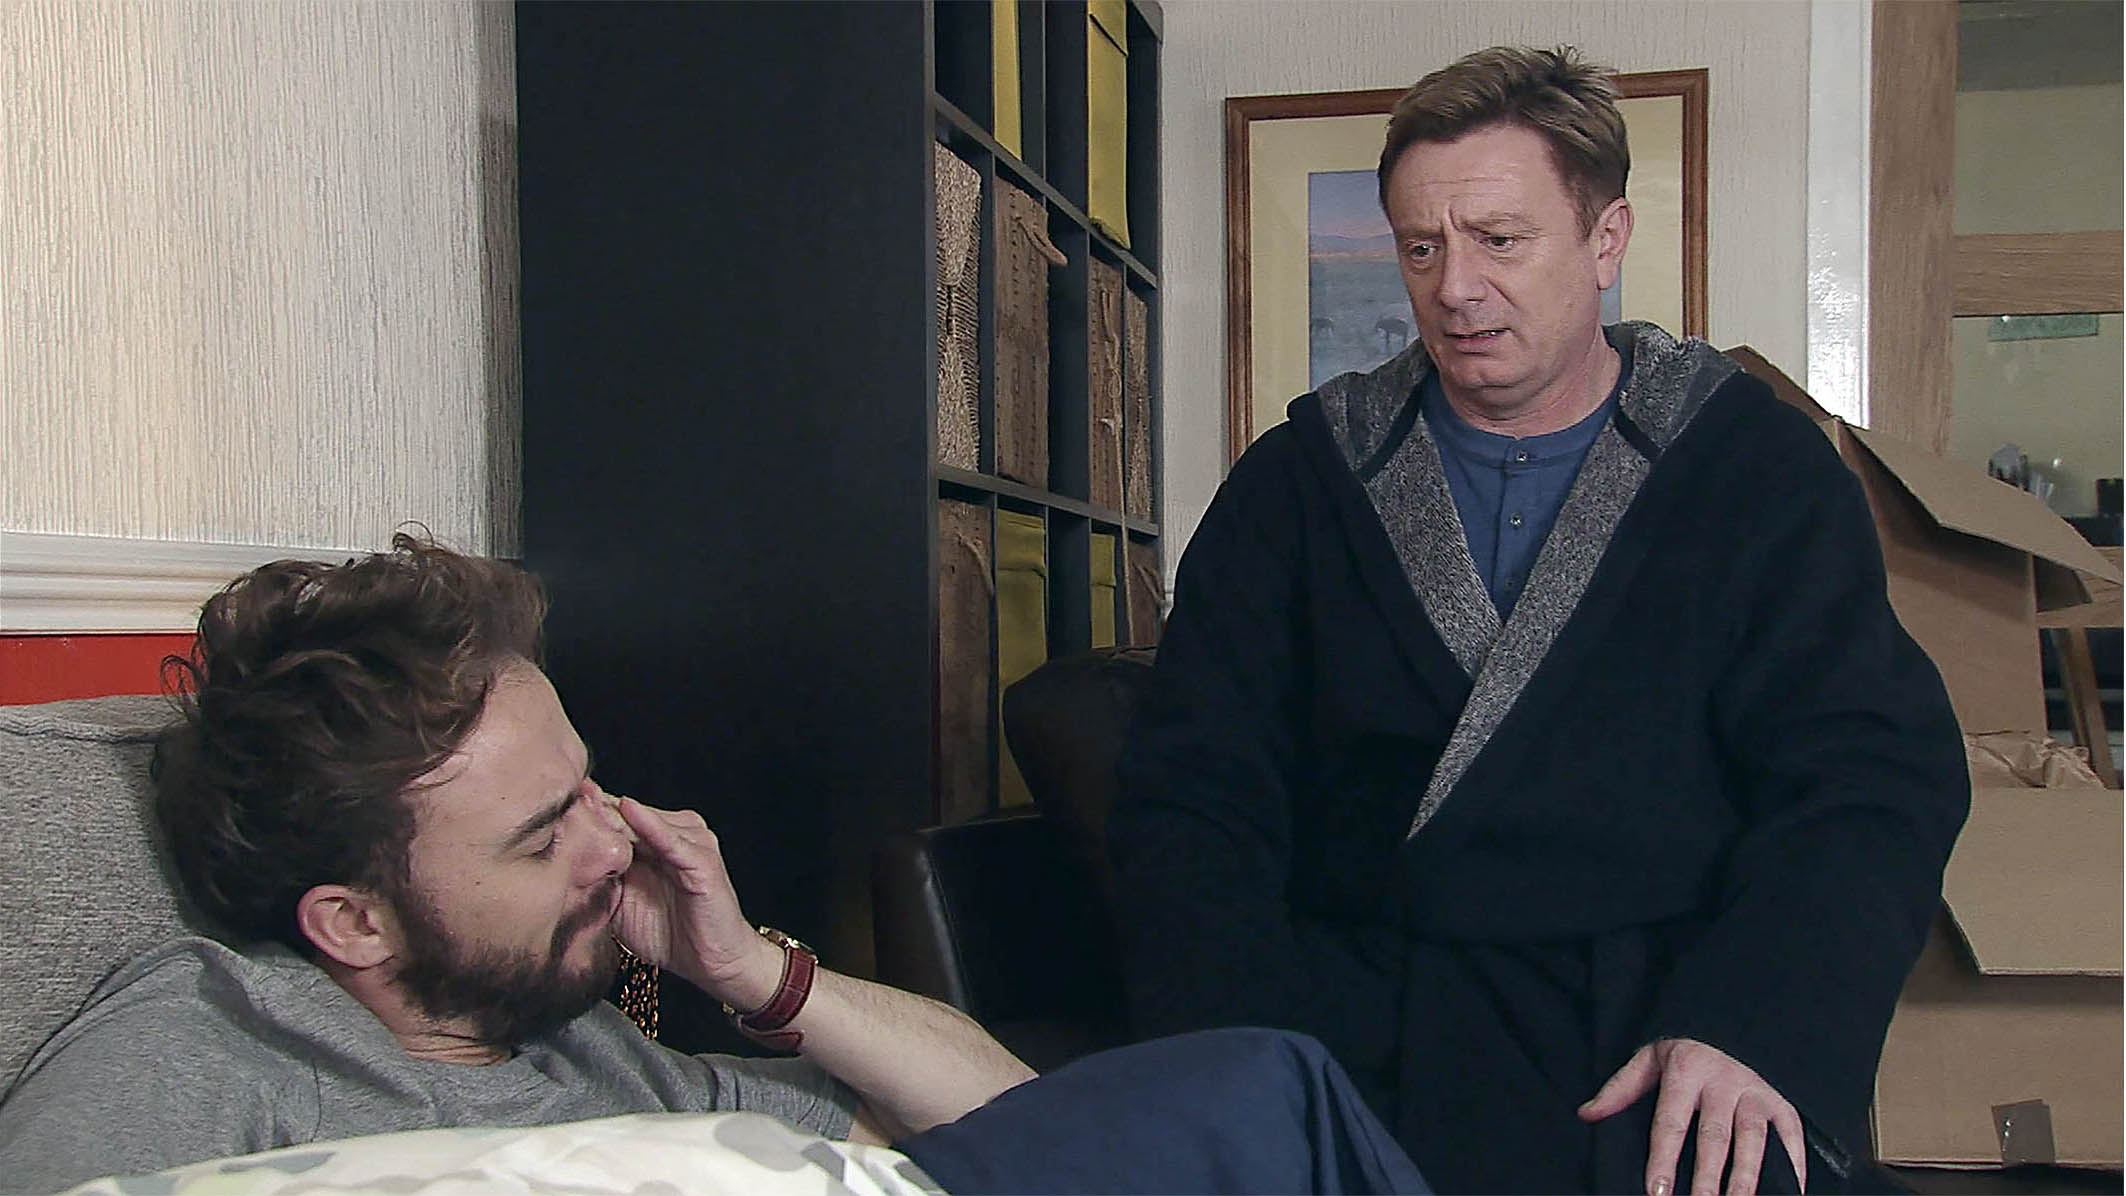 Sean Wilson on his return as David's dad, Martin Platt: 'It was like waking up from a coma!'